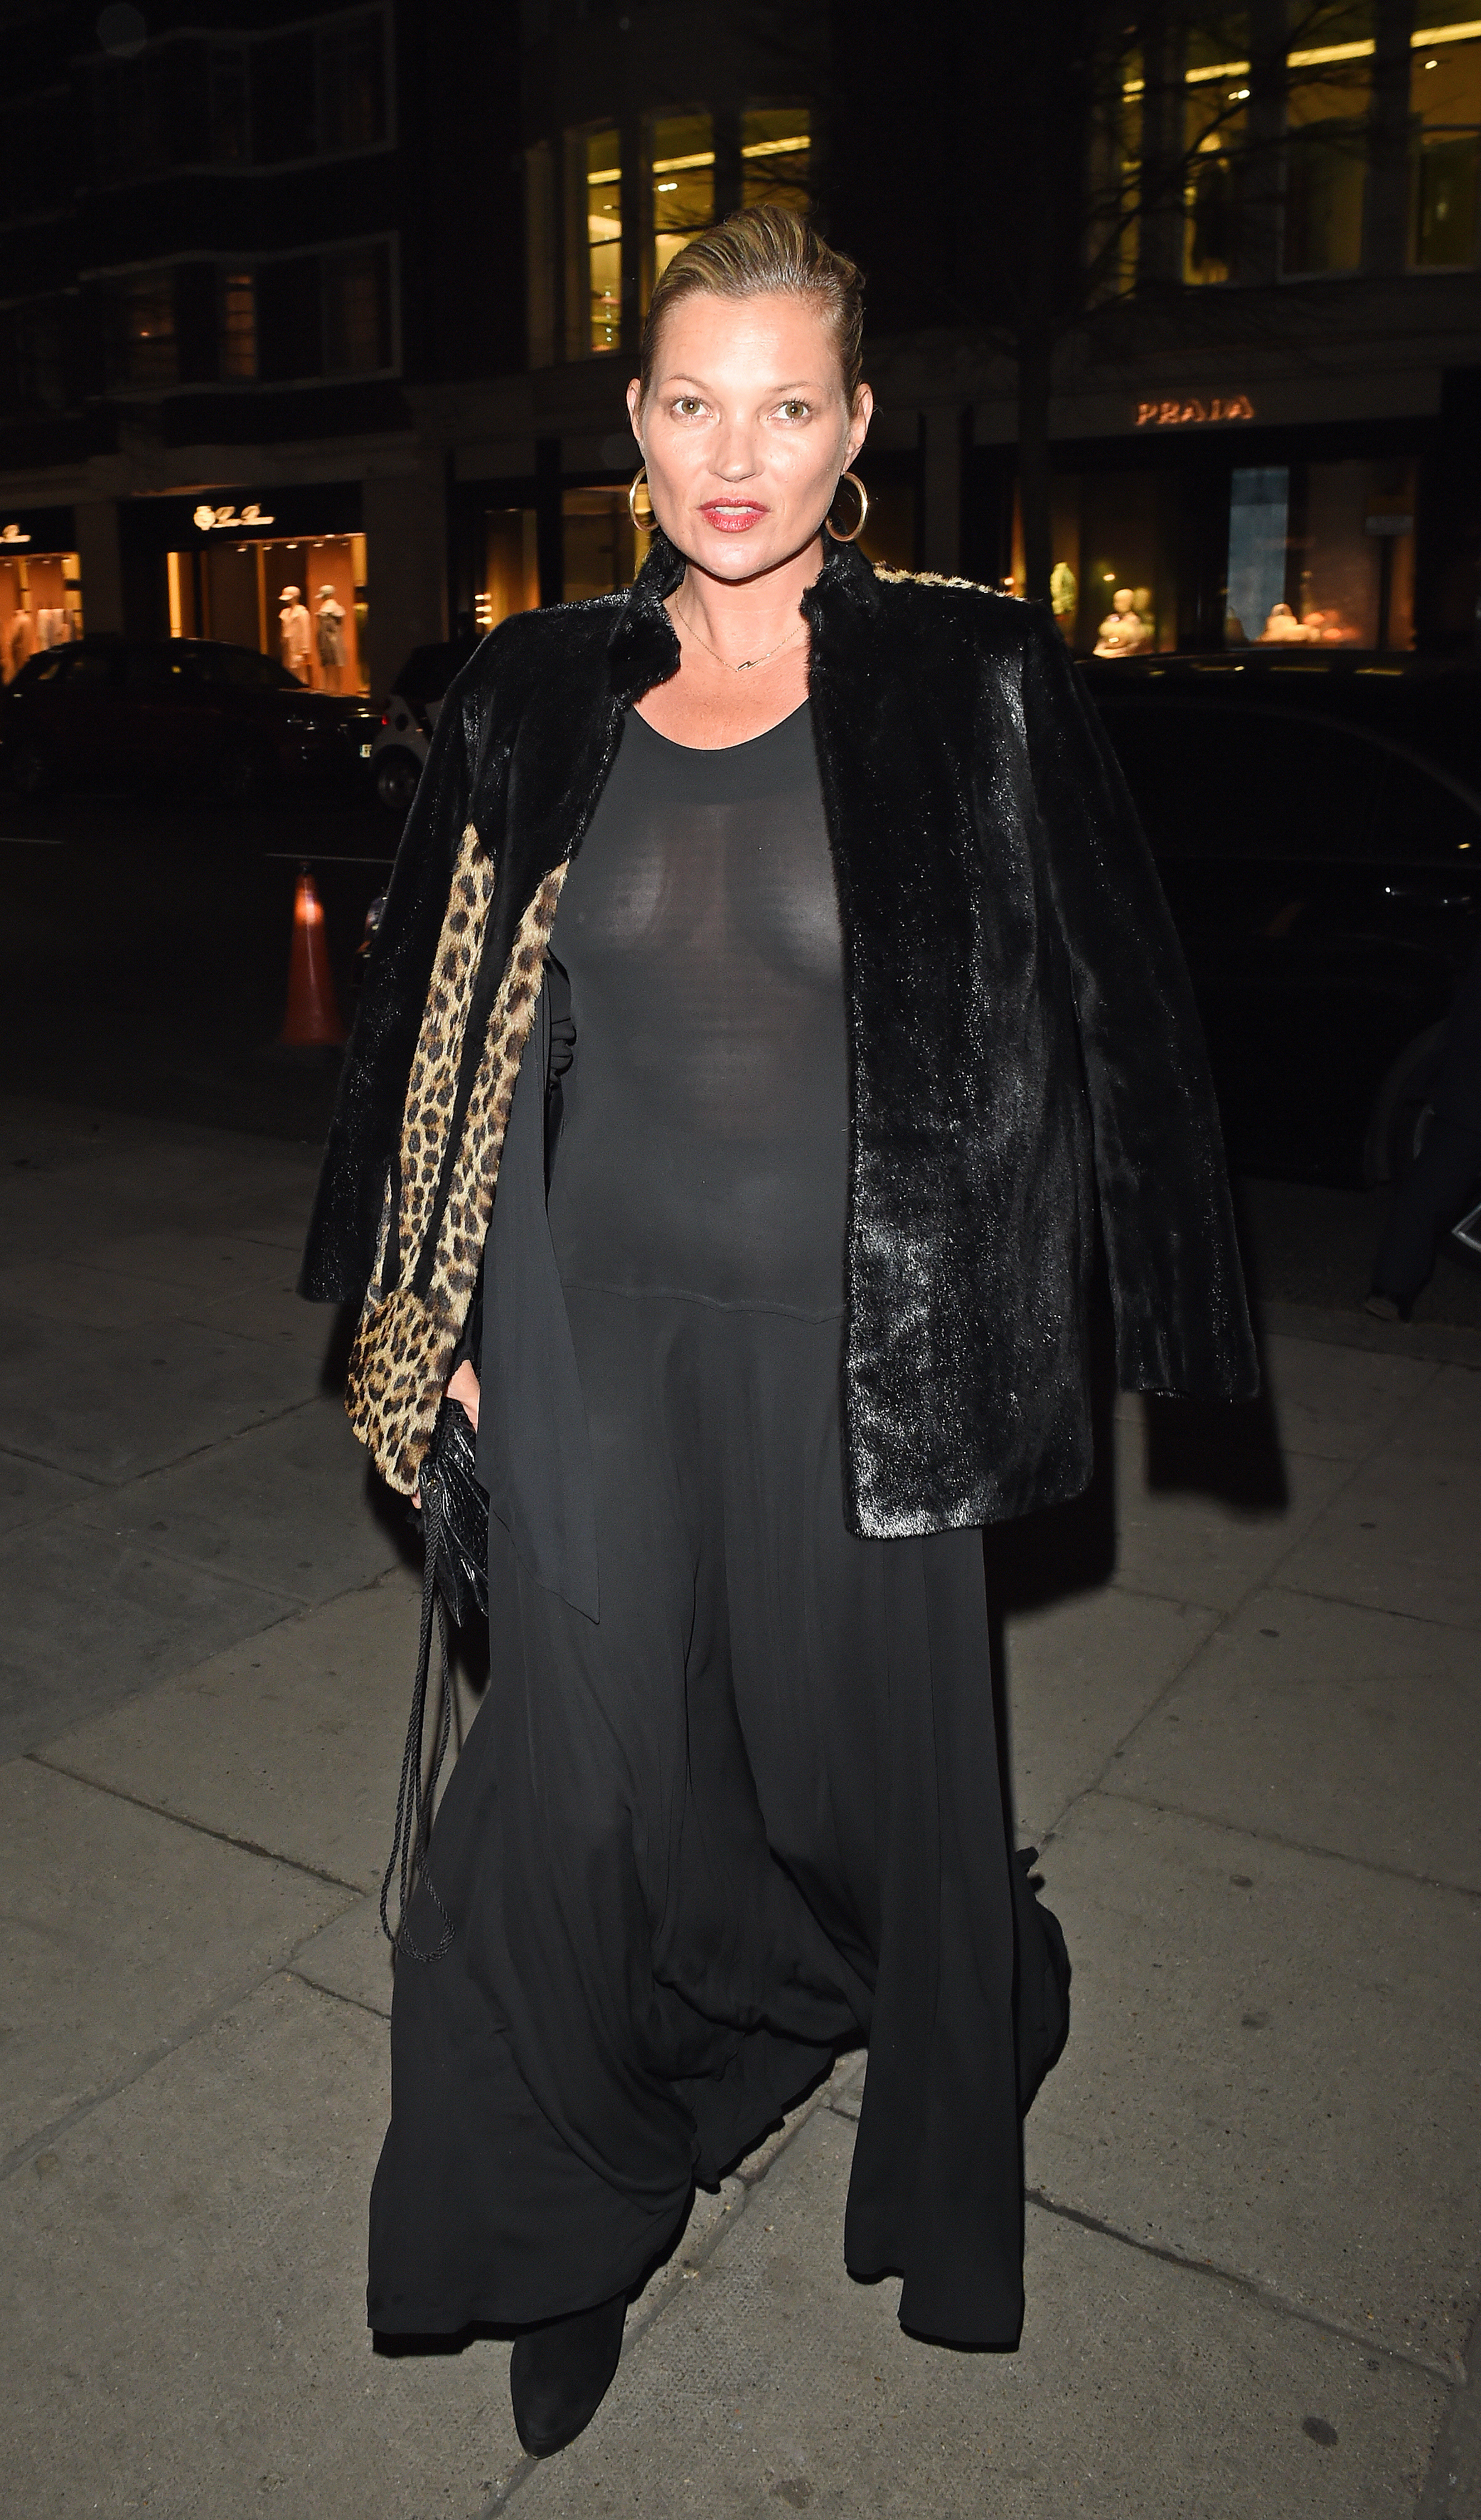 Kate Moss Flashes Her Nipples In Sheer Black Dress At Edward Enninful's Birthday Party